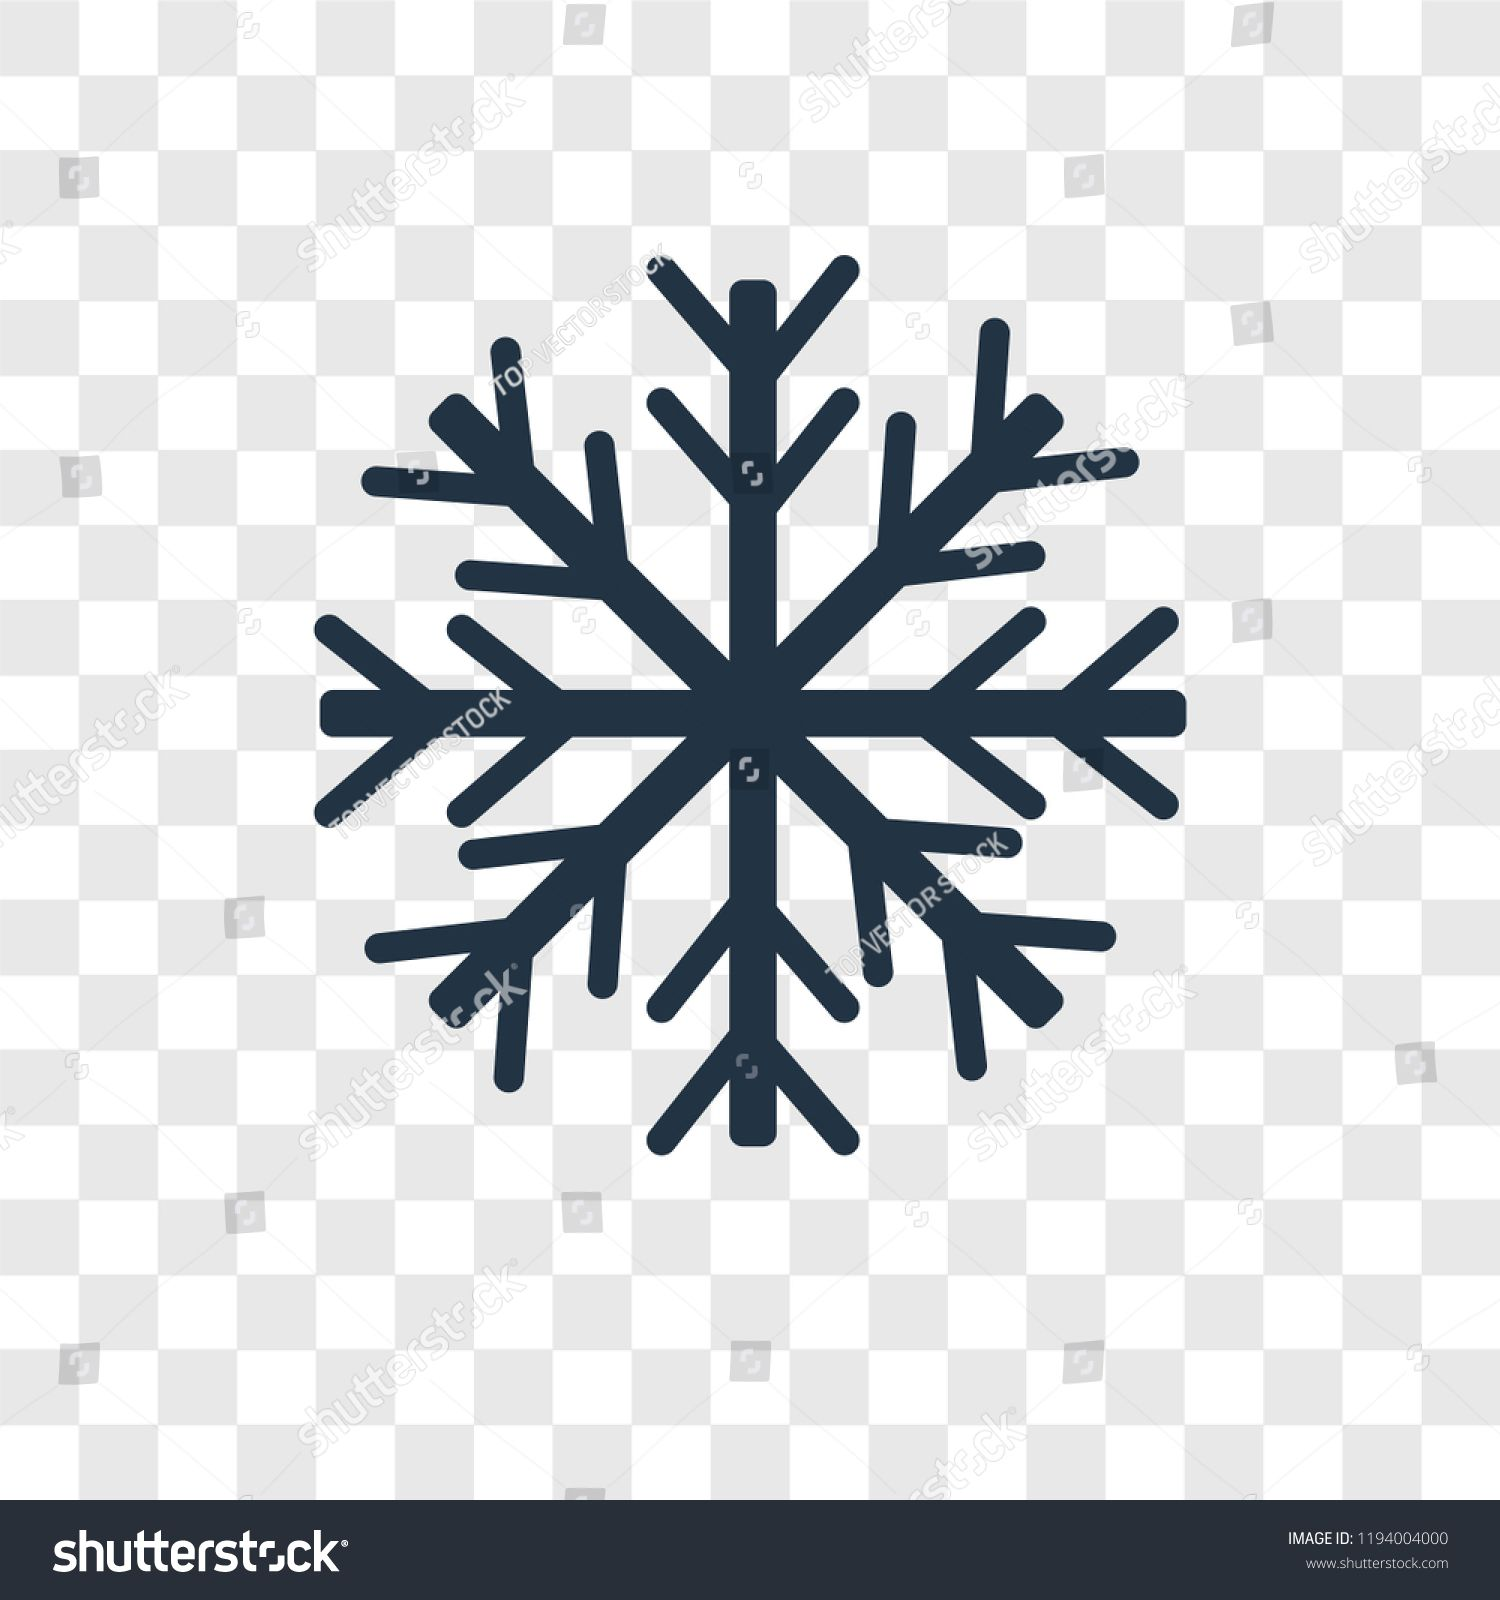 Snowflake vector icon isolated on transparent background